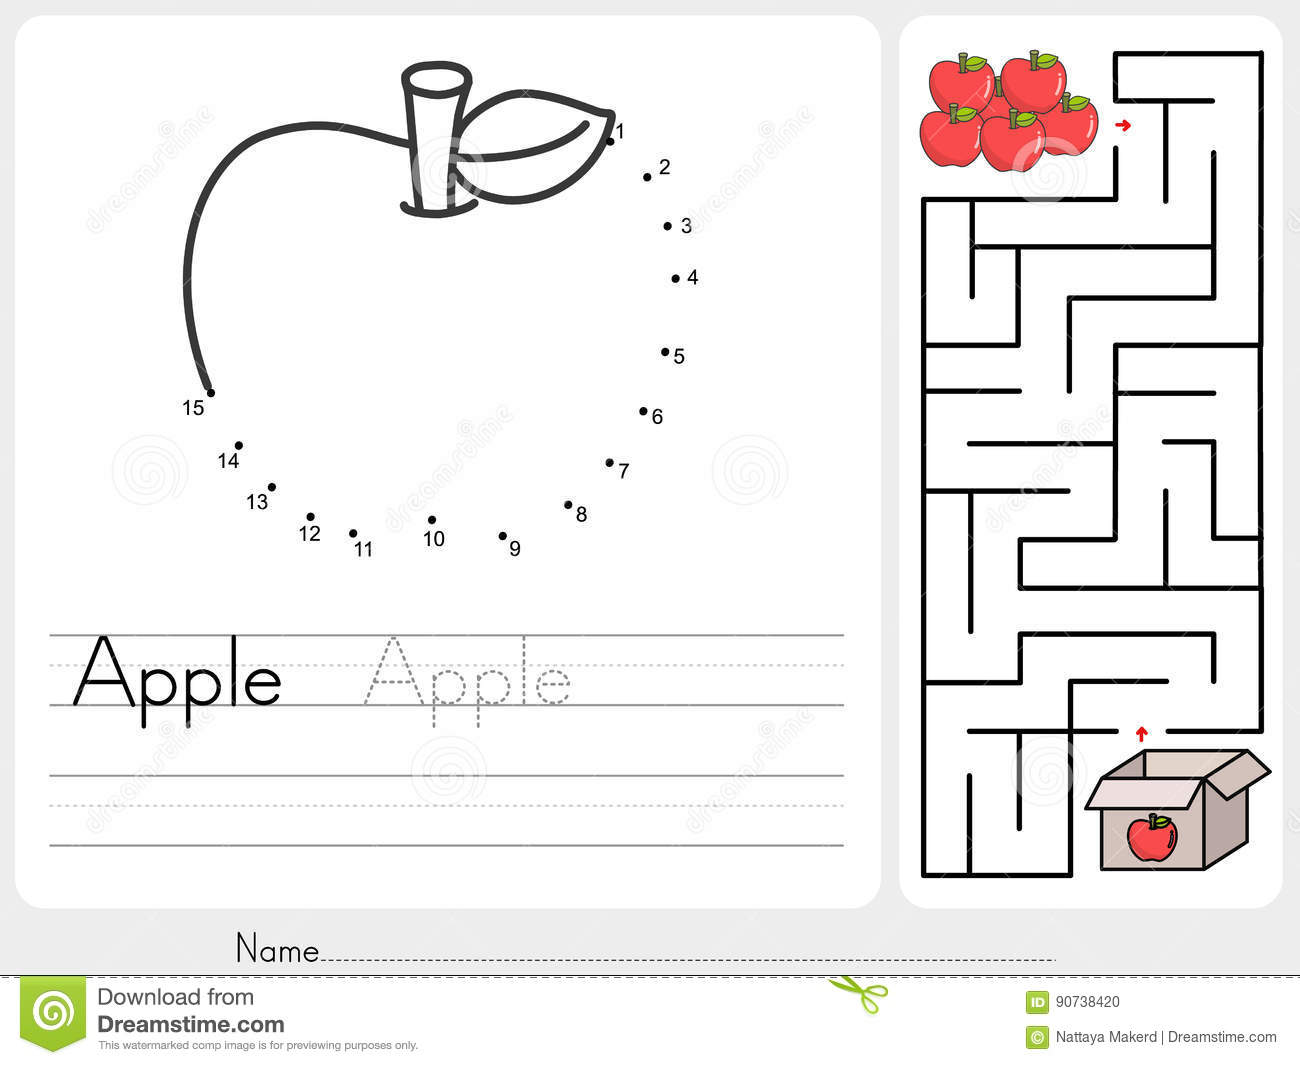 Connect Dots And Pick Apple Box Maze Game